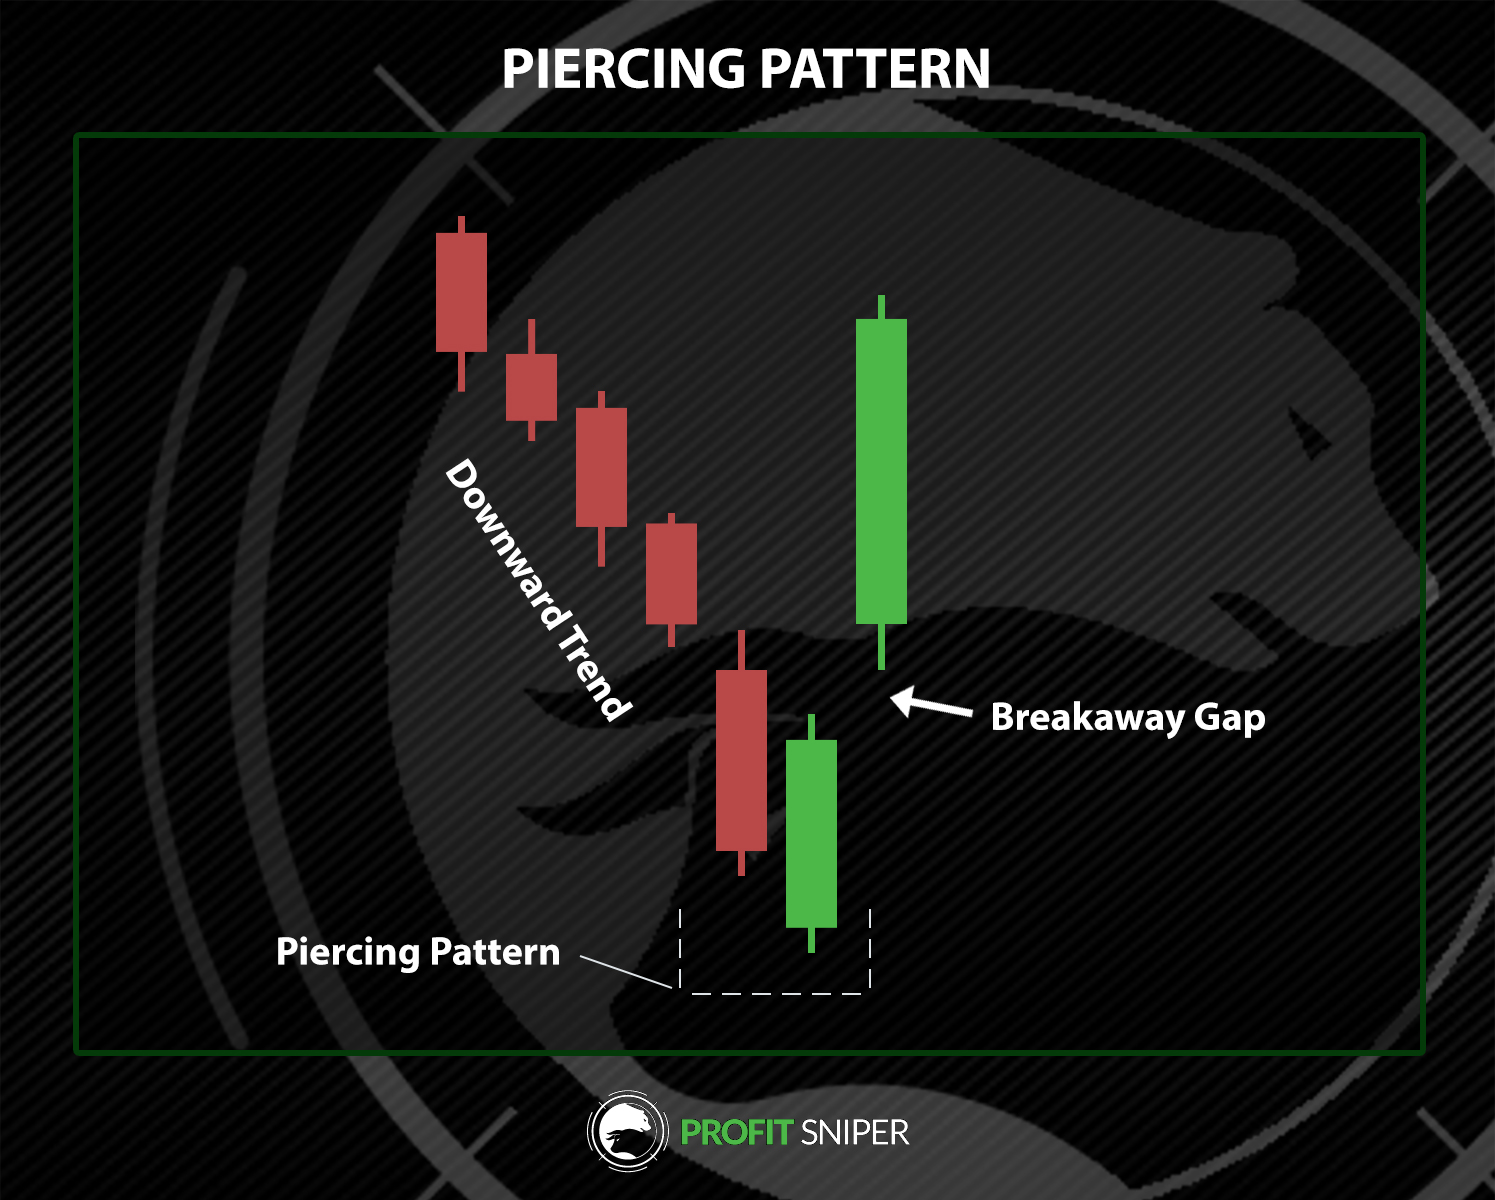 Piercing pattern on a crypto chart